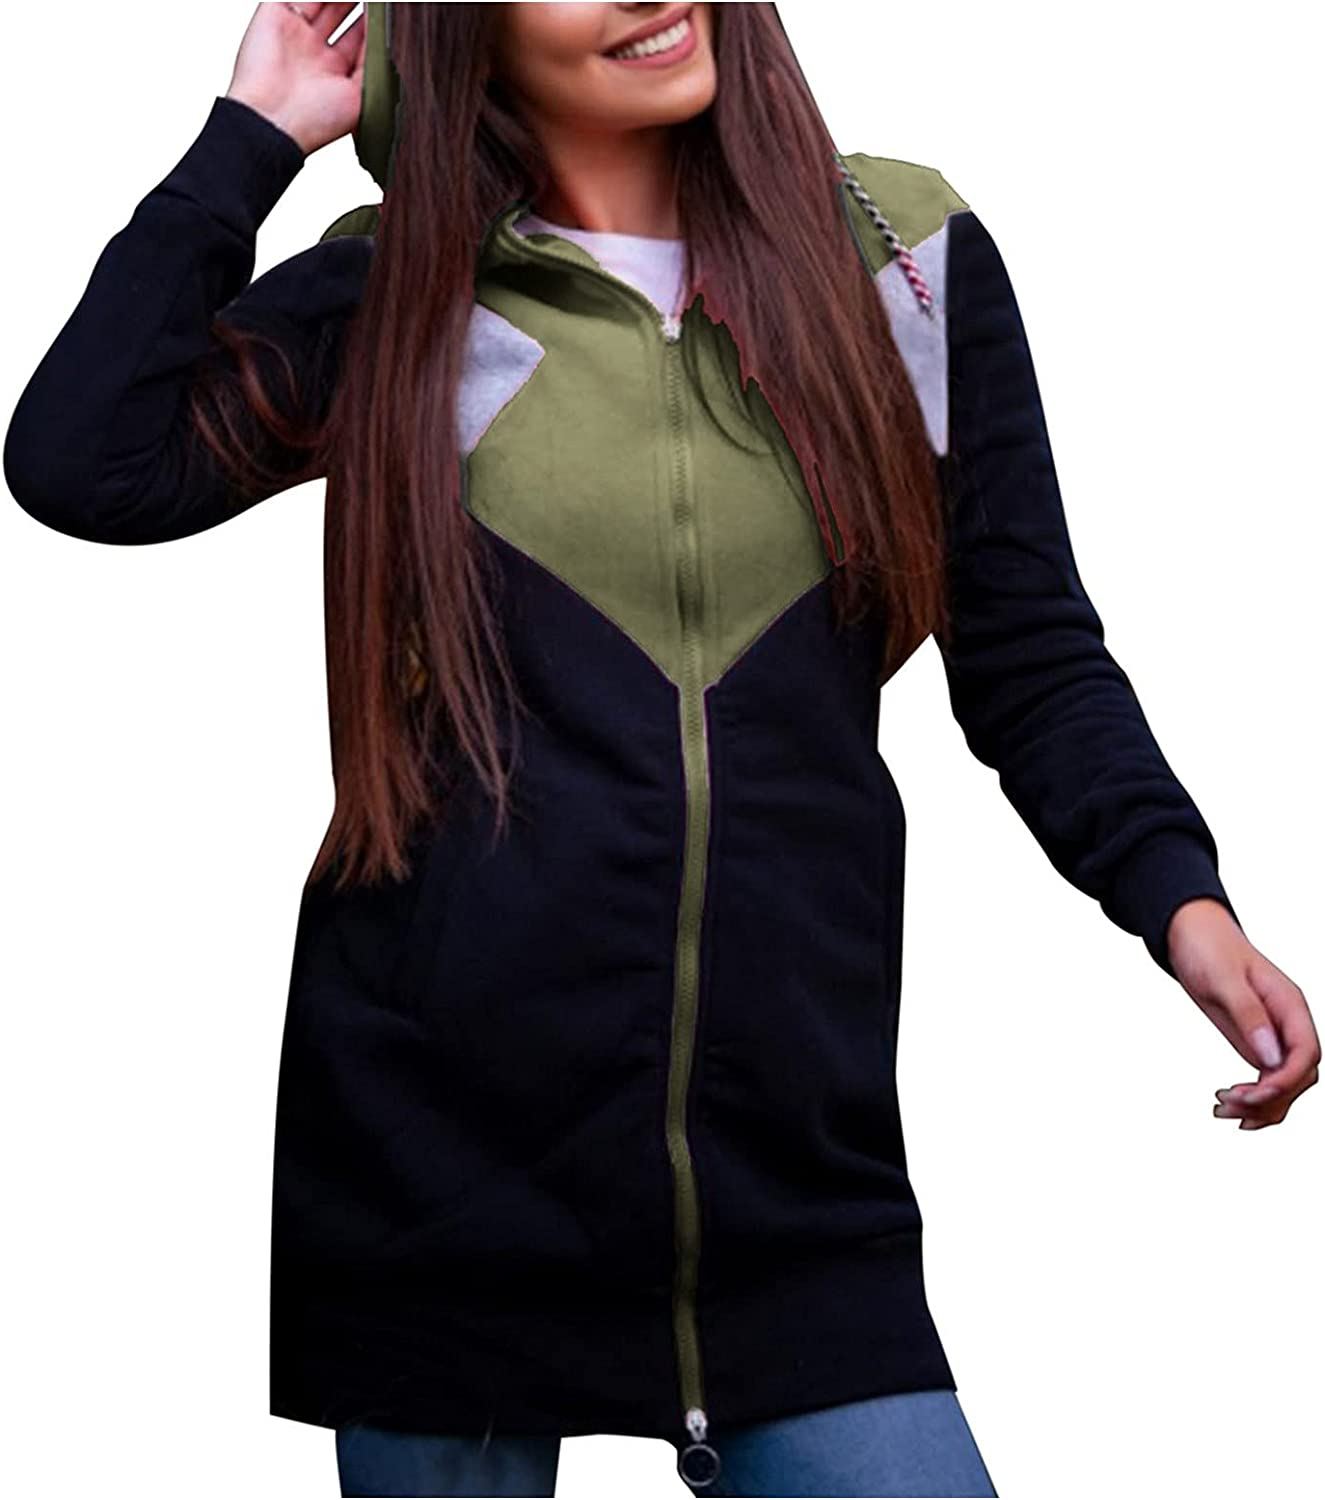 Women's Quilted Lightweight Jackets,Long Sleeve Fleece Open Front Hooded Cardigans Coats Fuzzy Outwear with Pocket